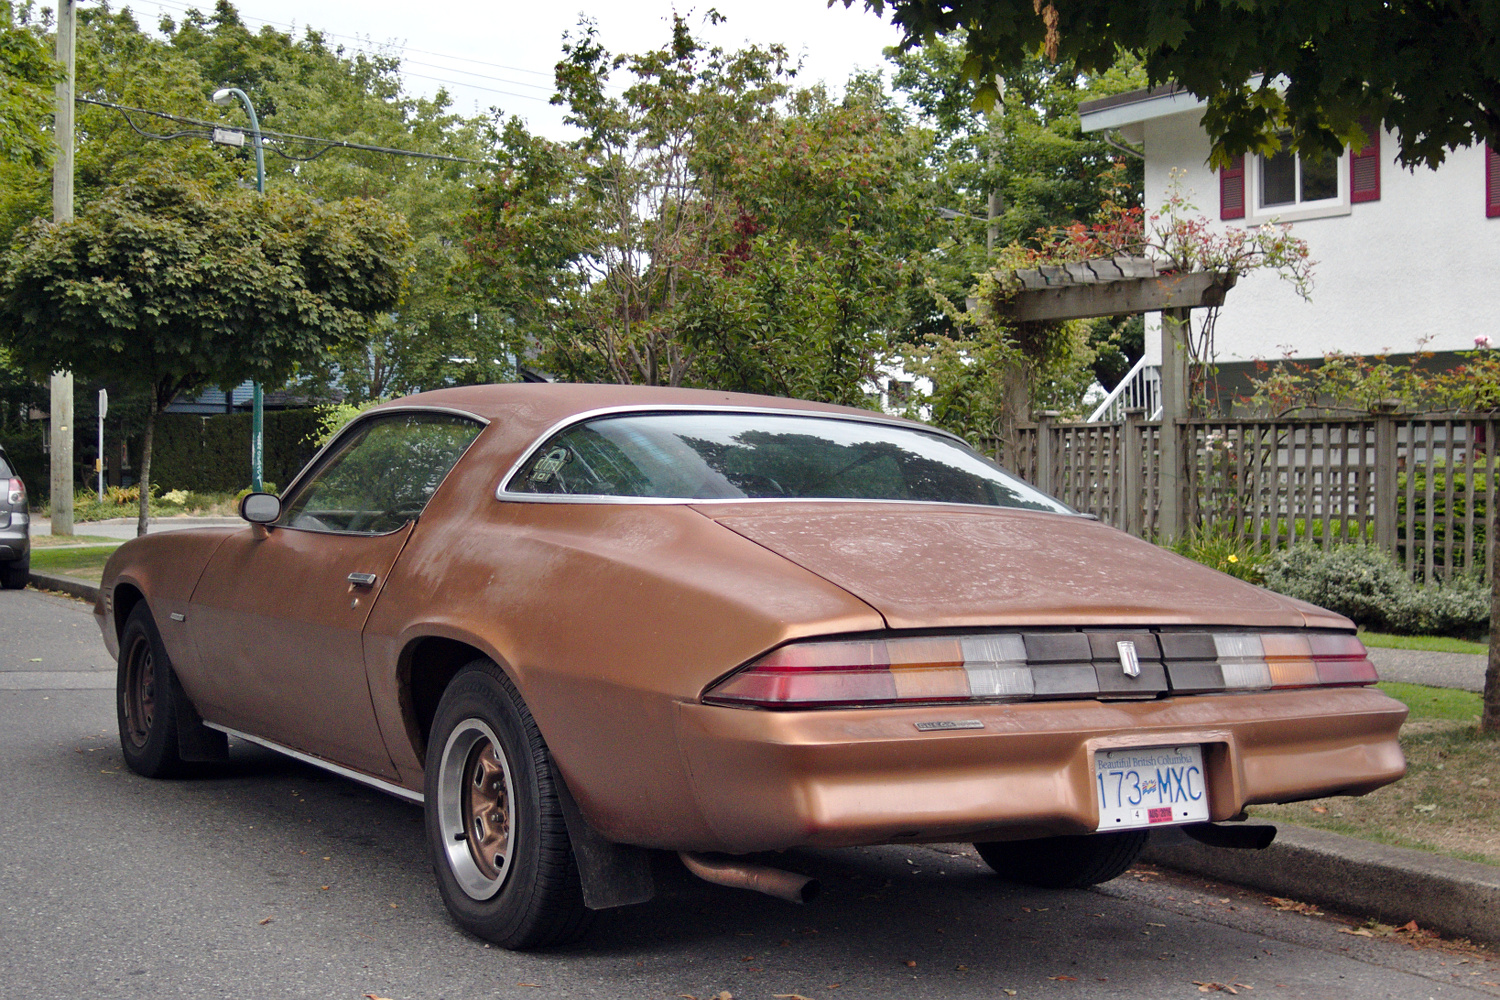 old parked cars vancouver 1978 chevrolet camaro sport coupe. Black Bedroom Furniture Sets. Home Design Ideas